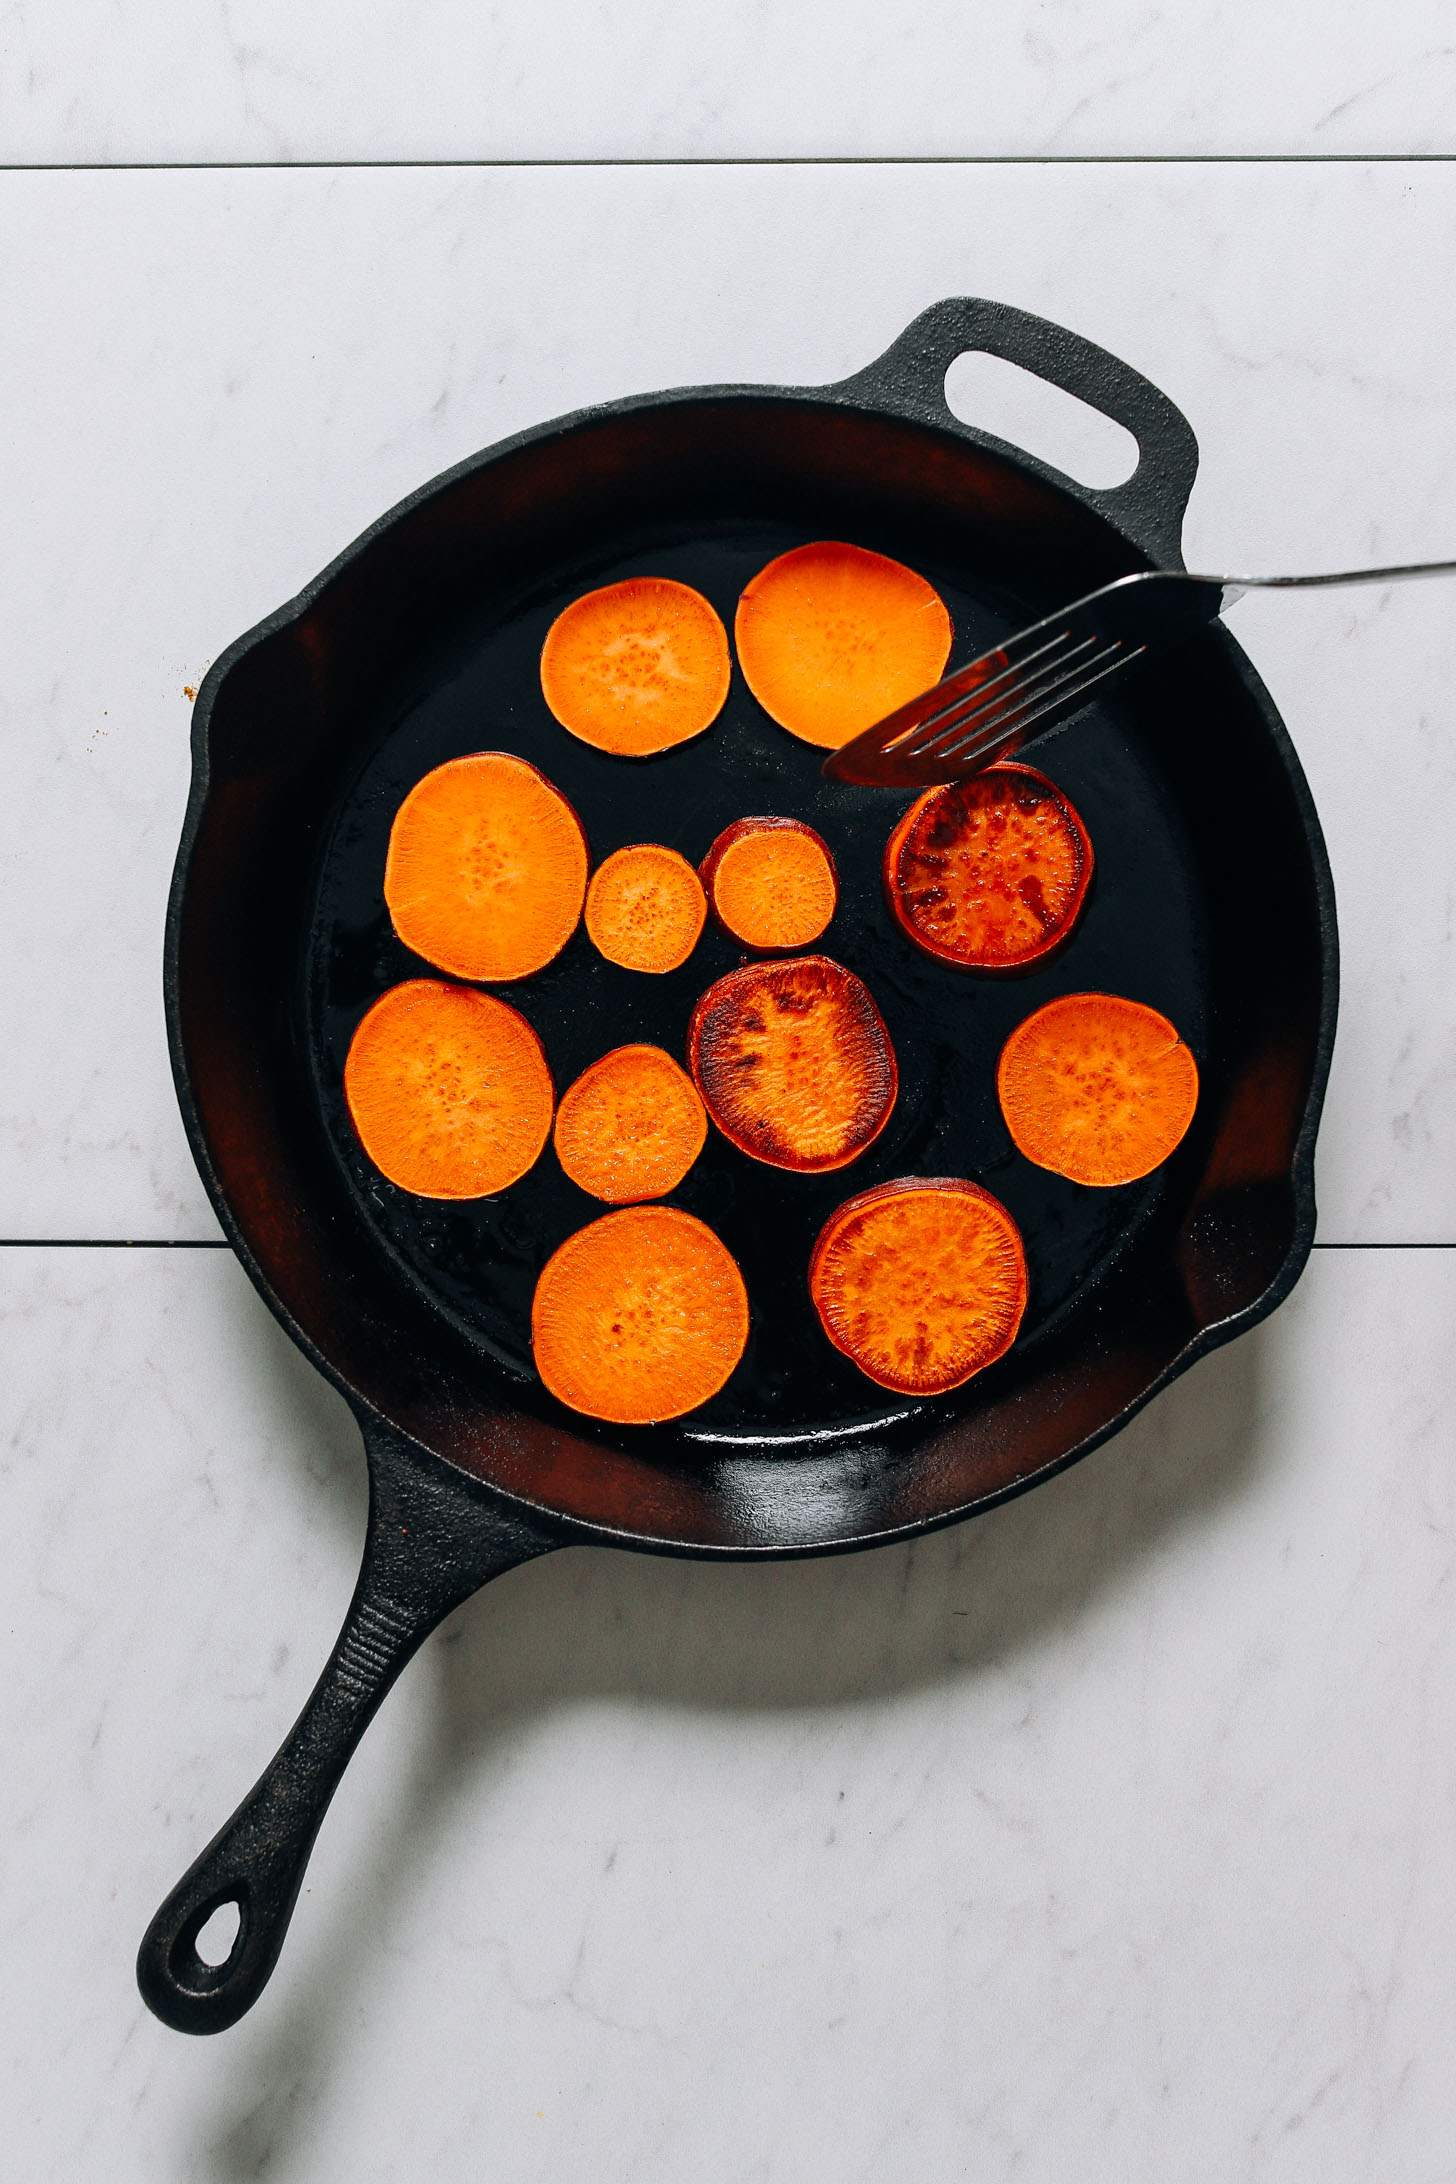 Cooking sweet potato slices in a cast iron skillet